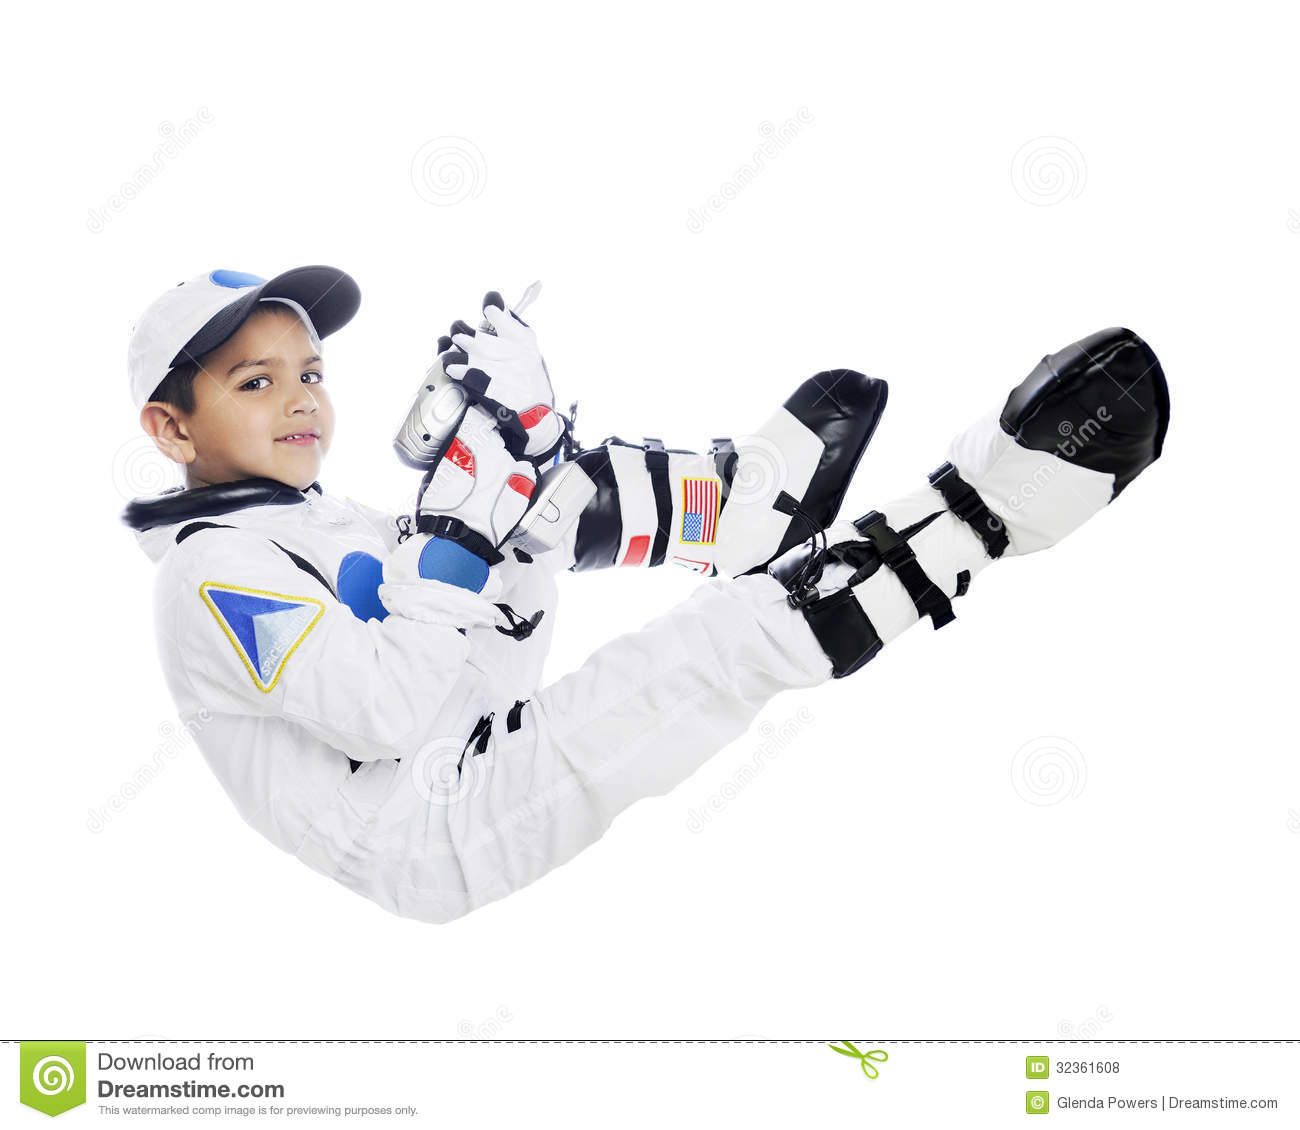 astronaut kid space - photo #43